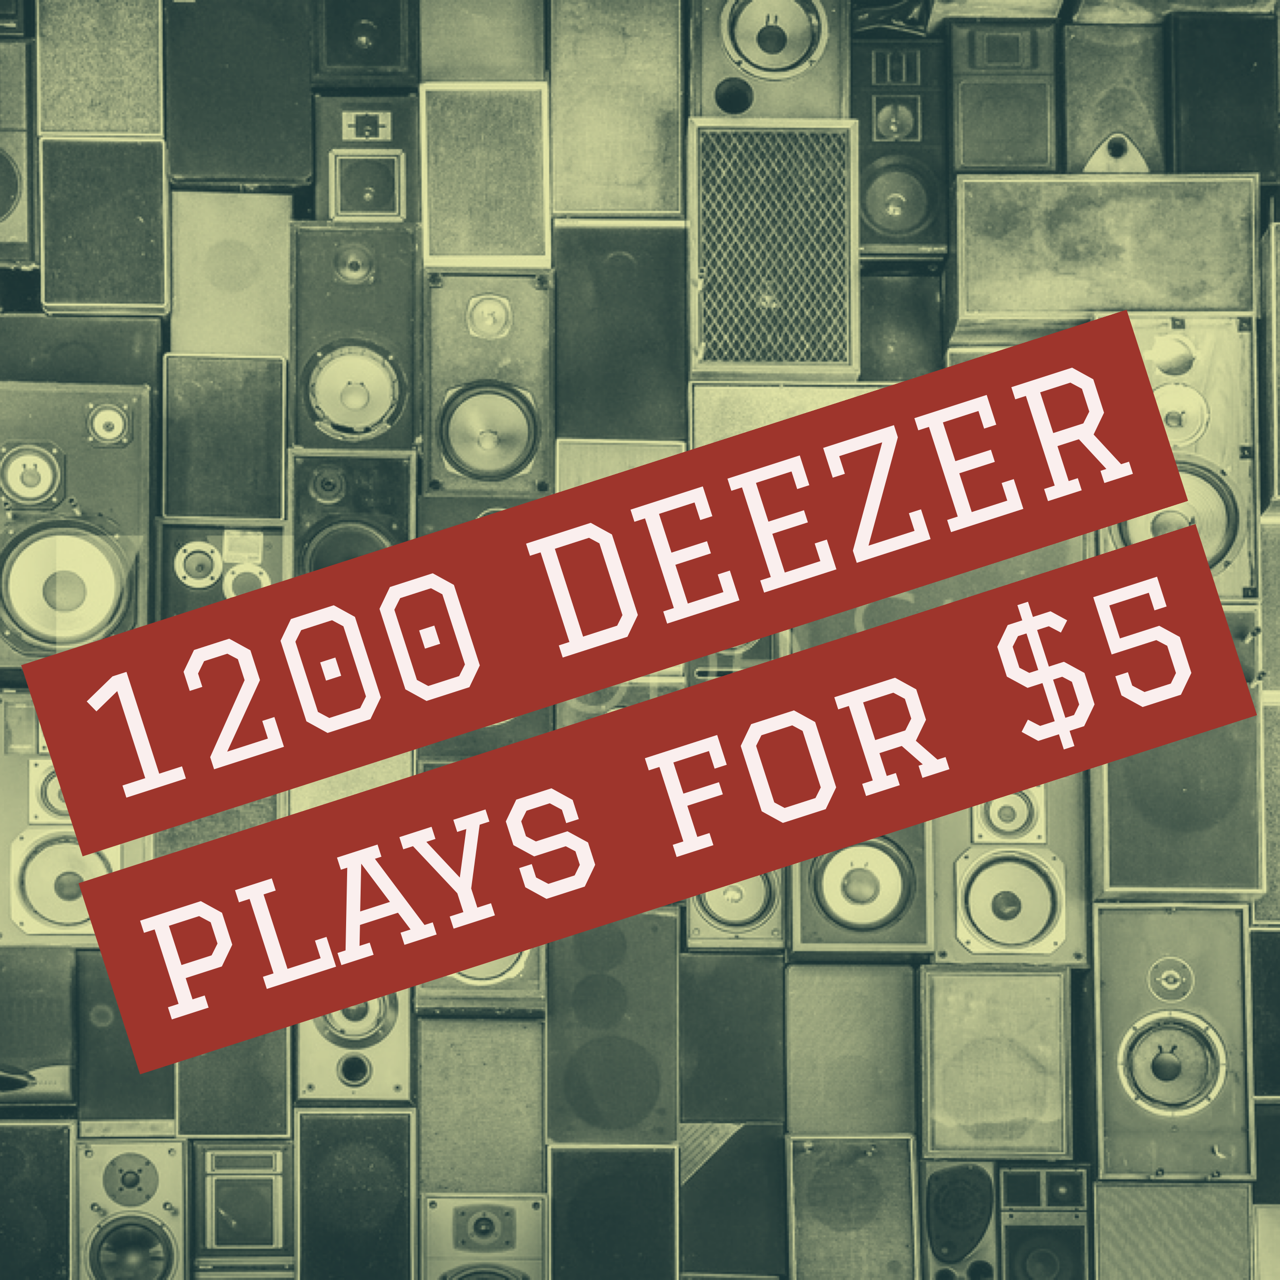 Deezer Music Promotion - 1200 listeners for your songs